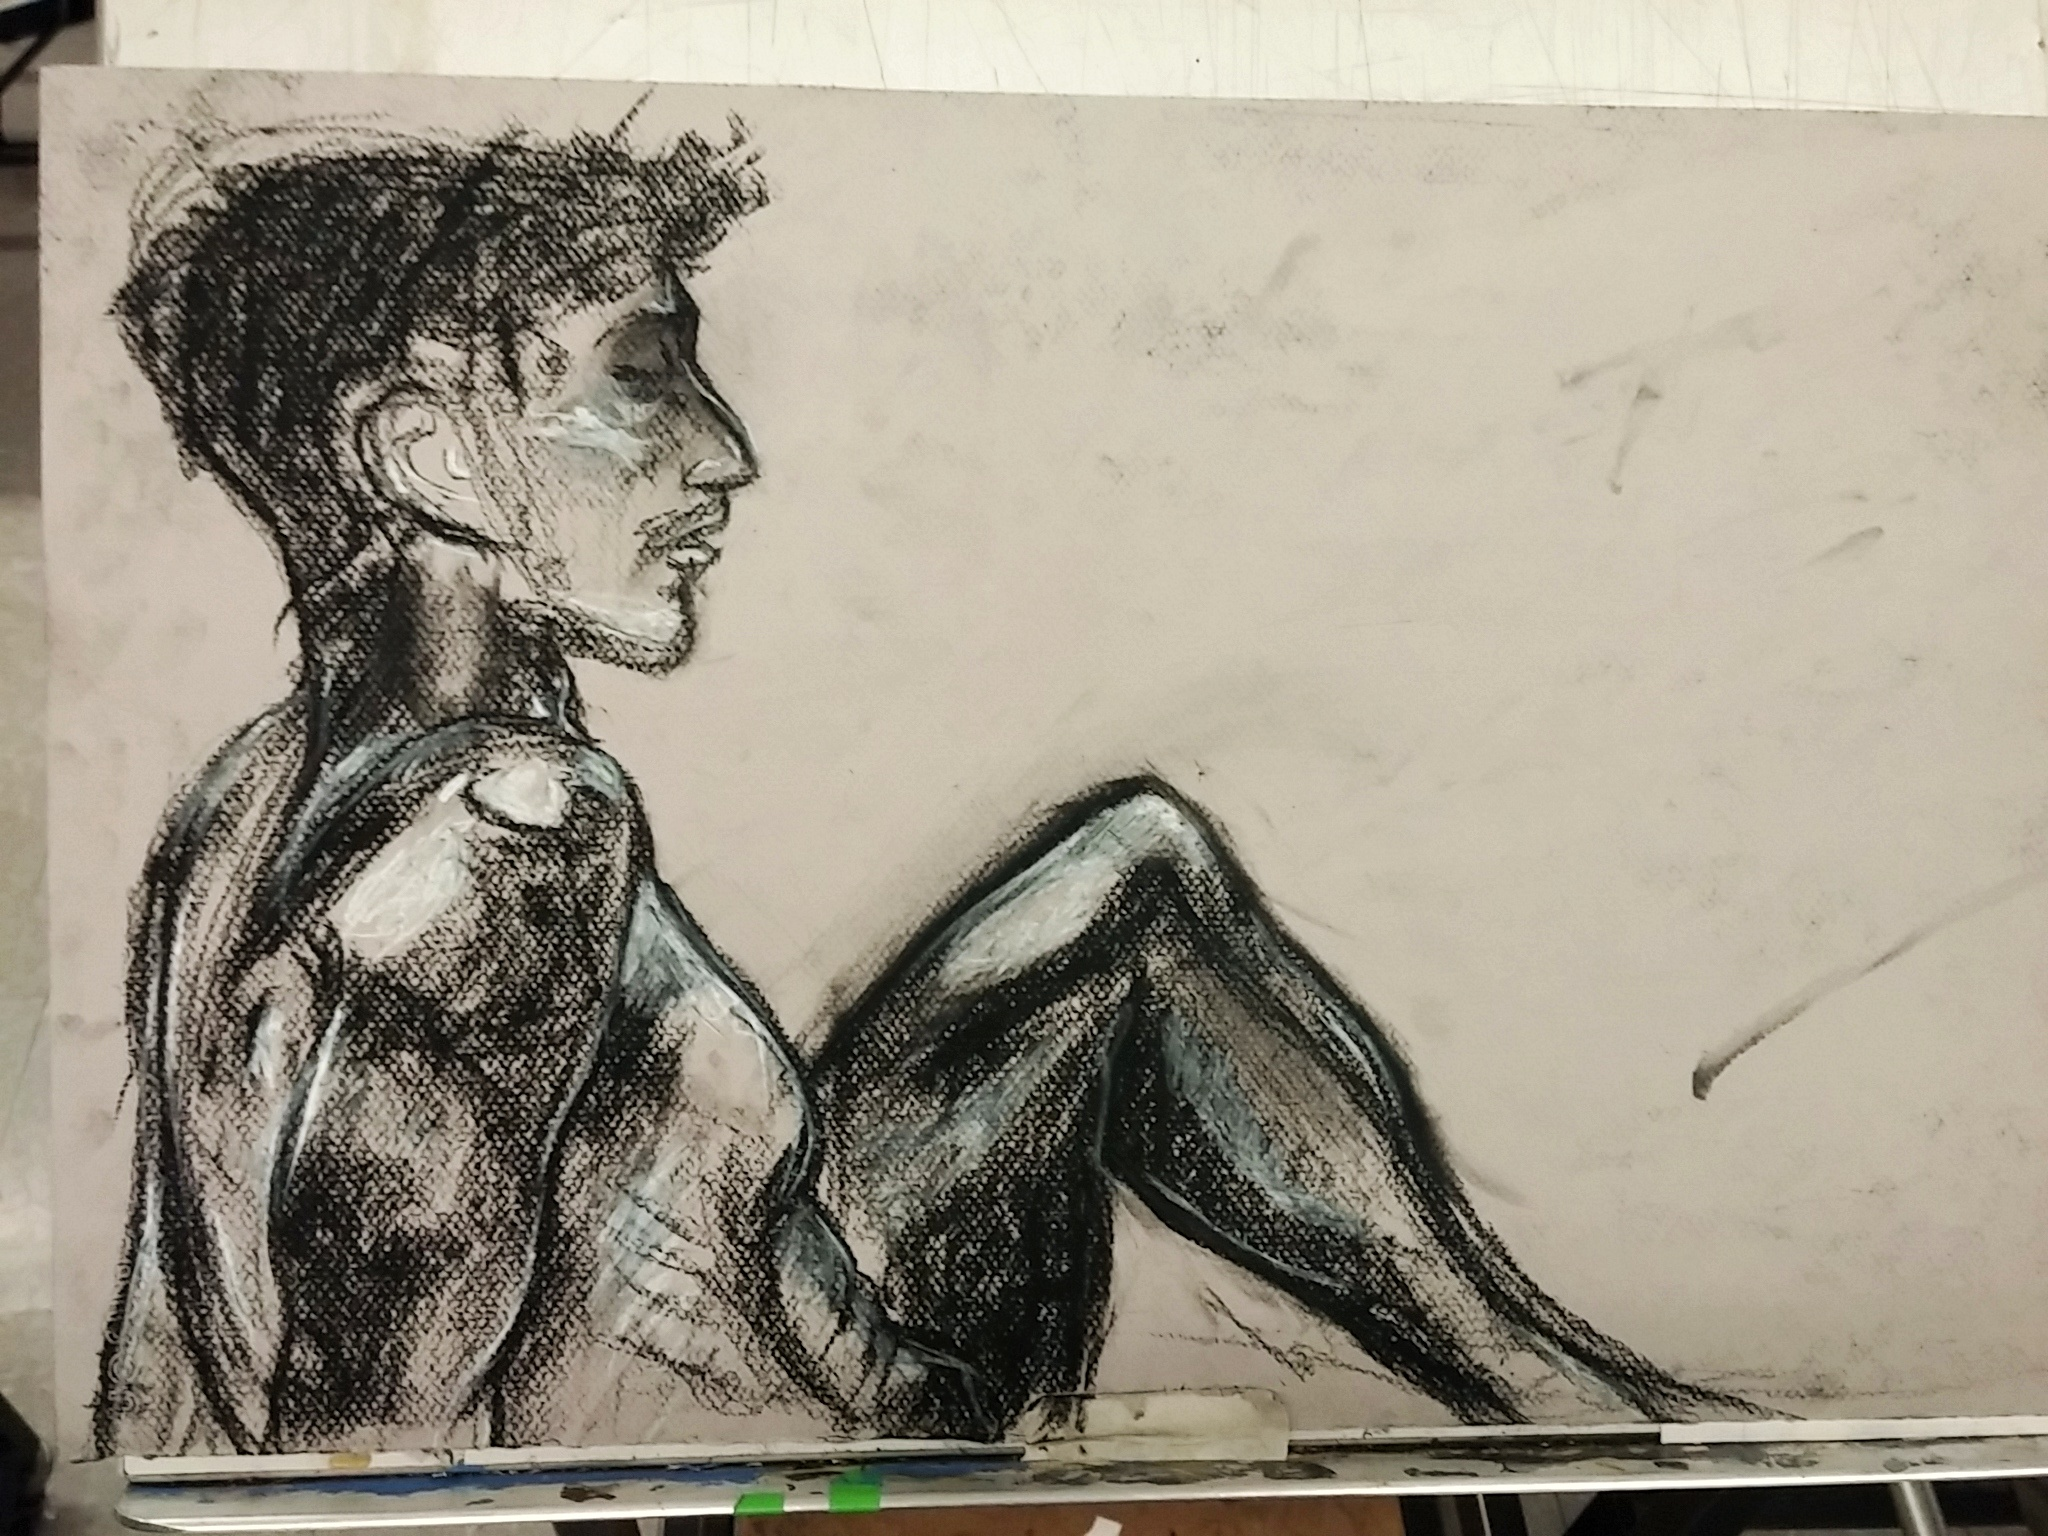 Analog drawing – foreshortened figure